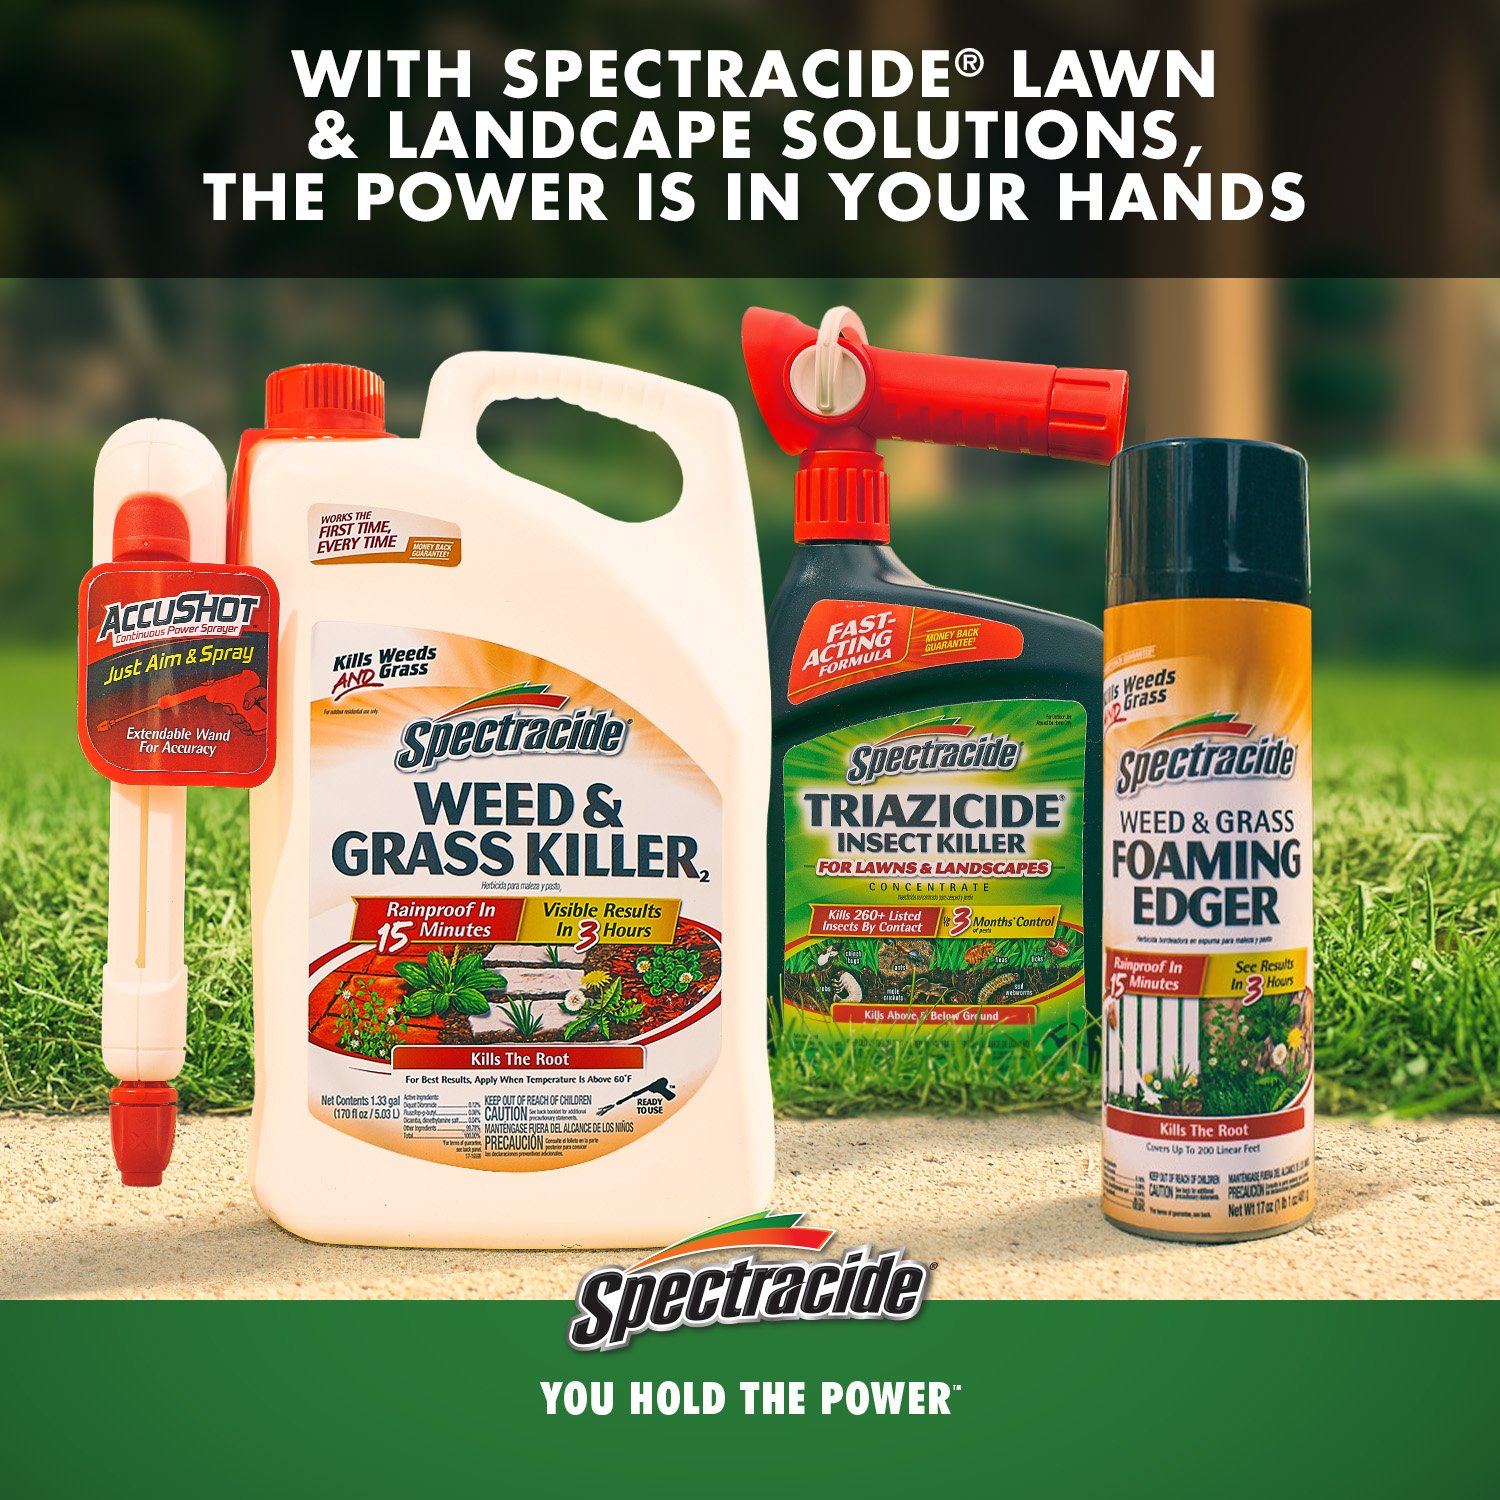 Spectracide HG-96624 Concentrate, Weed Stop Plus Crabgrass Killer Lawns, Black by Spectracide